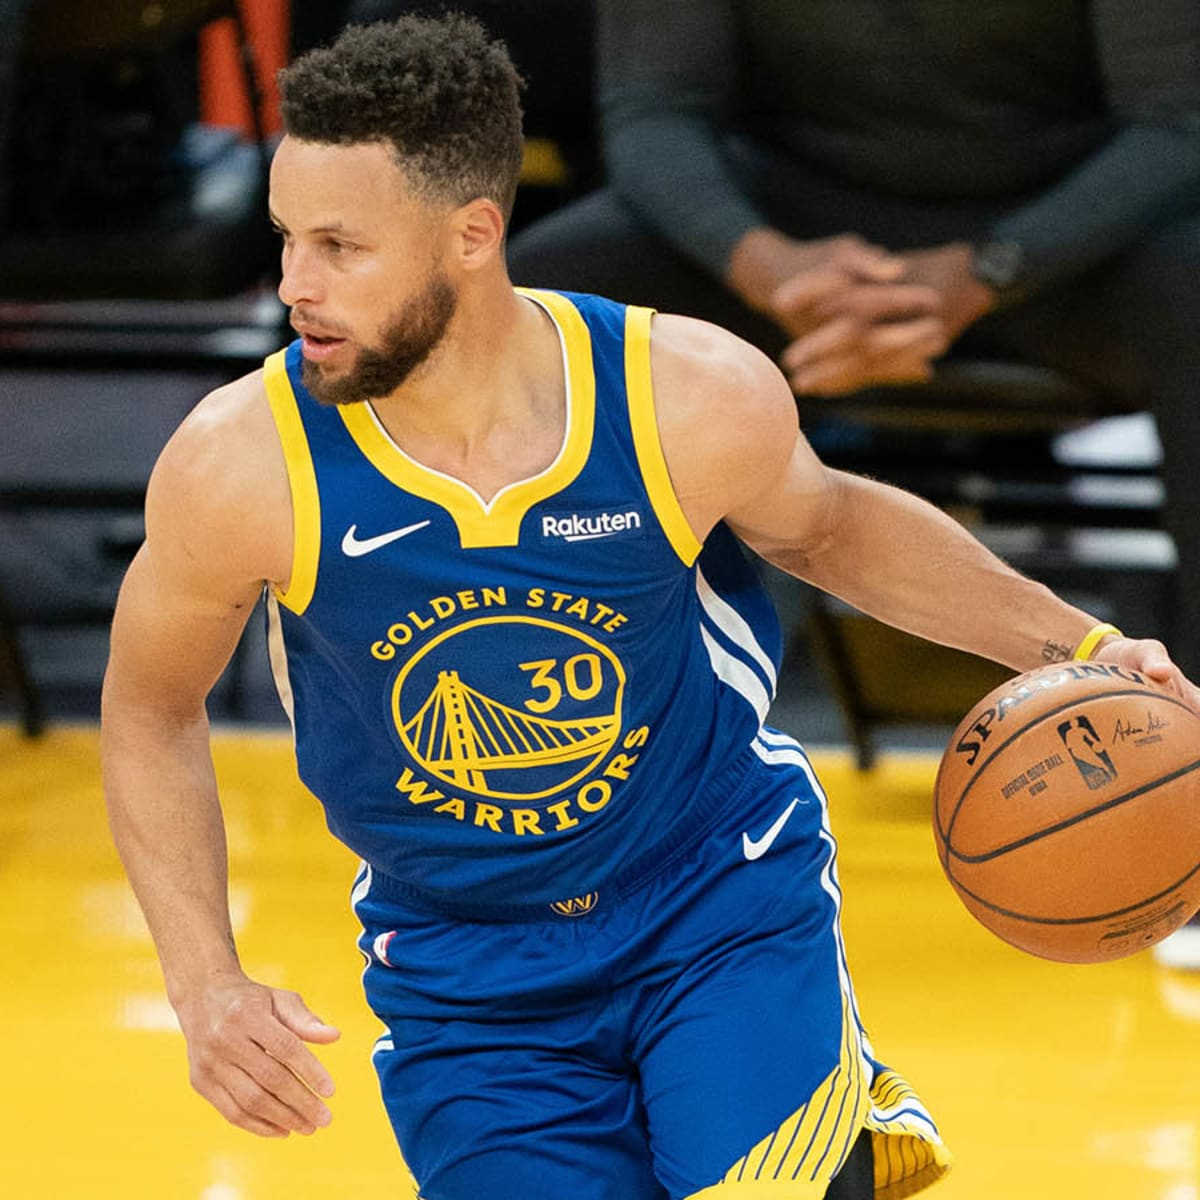 NBA power rankings: Steph Curry's historic month lifts Warriors - Sports  Illustrated